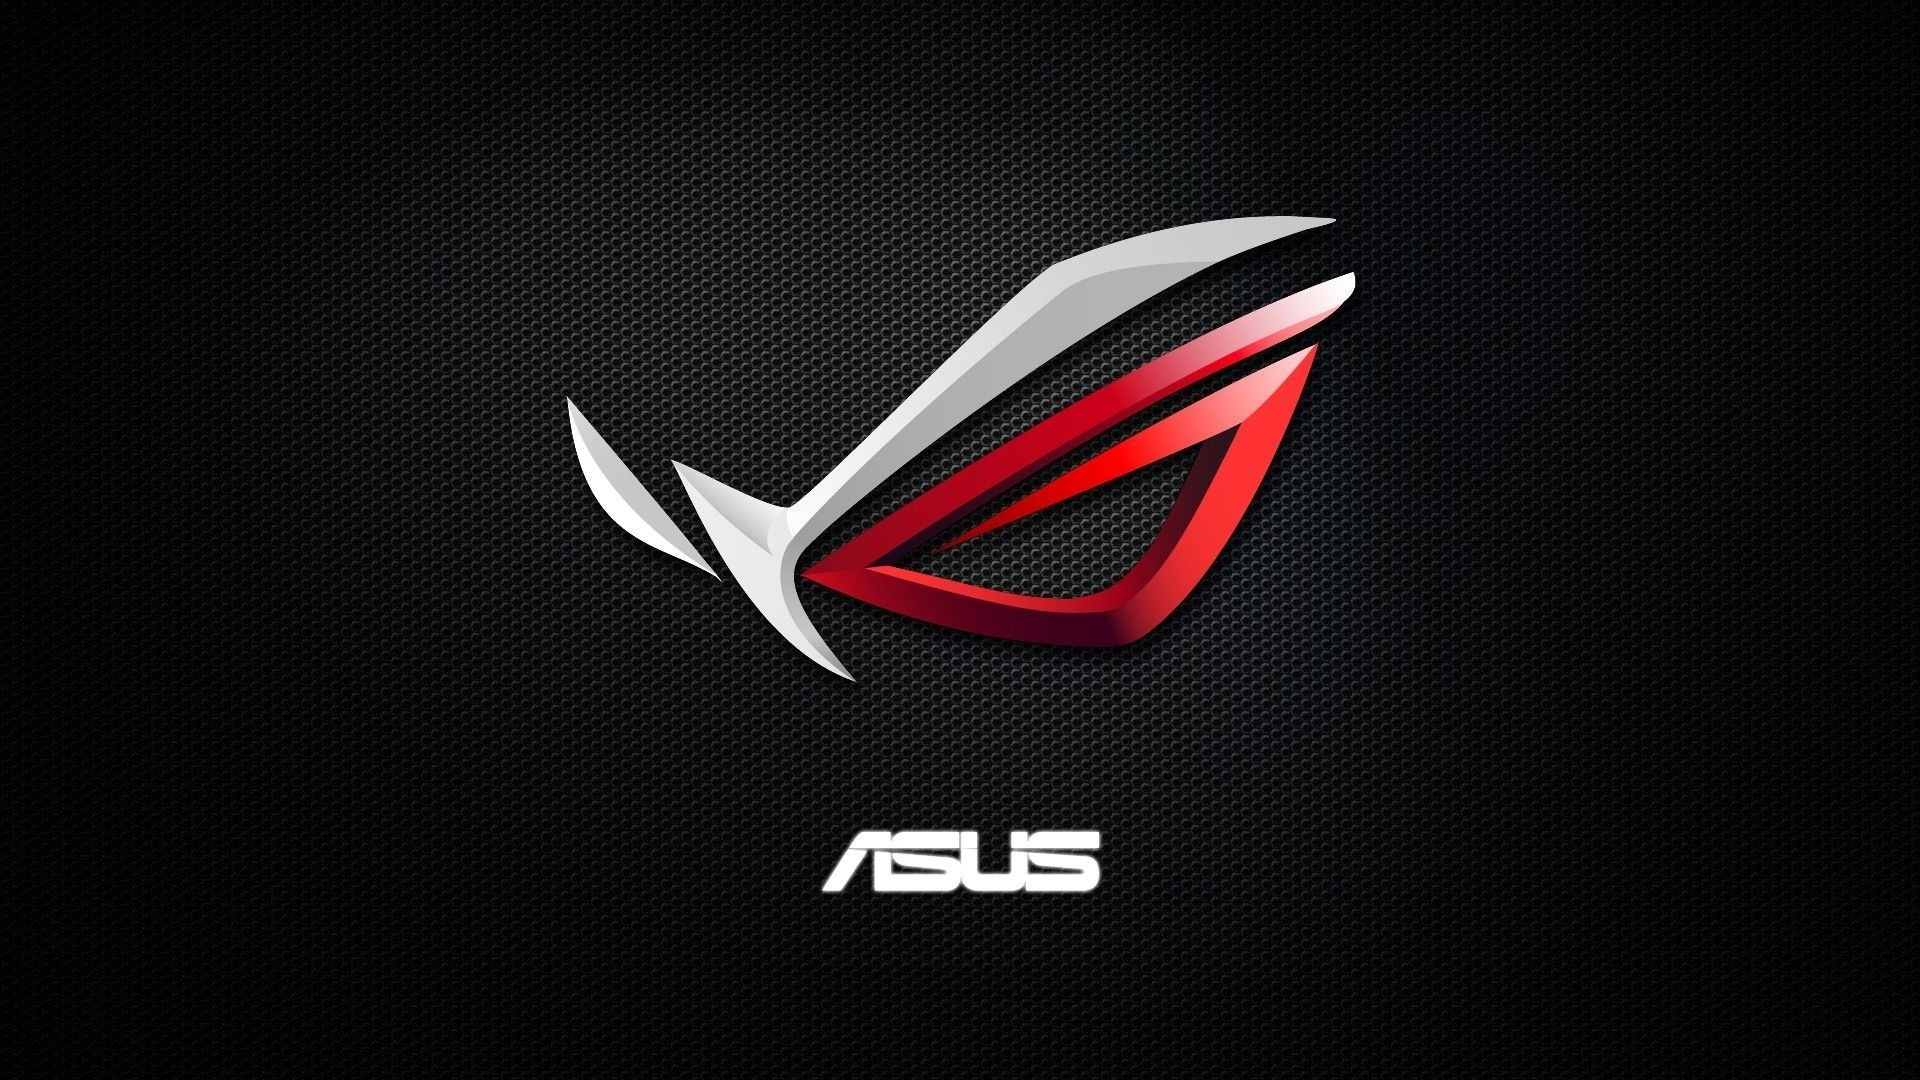 74 Asus Rog Wallpapers on WallpaperPlay 1920x1080